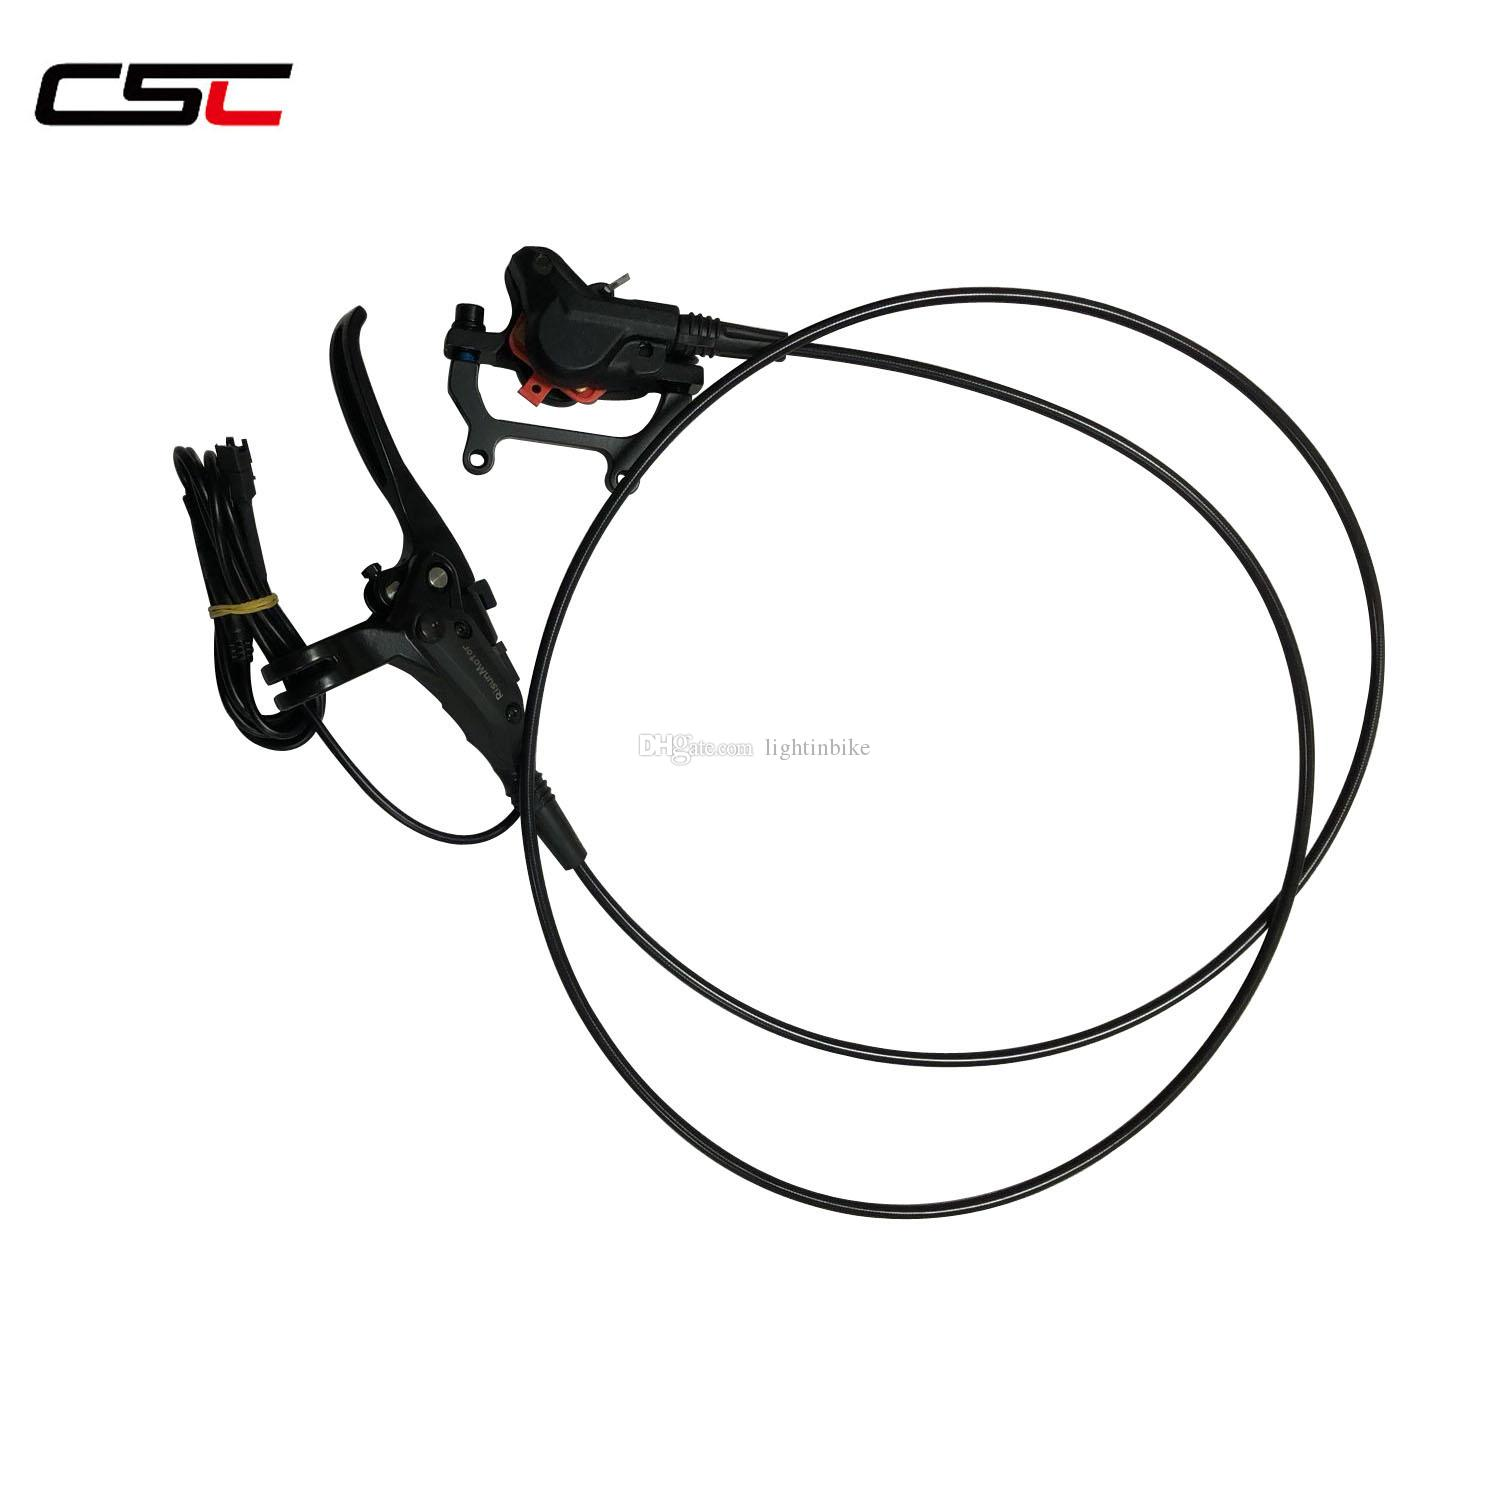 CSC Hydraulic Disc Brake RM-D700c (Can Cut Off Power) for Electric Bike Controller ebicycle